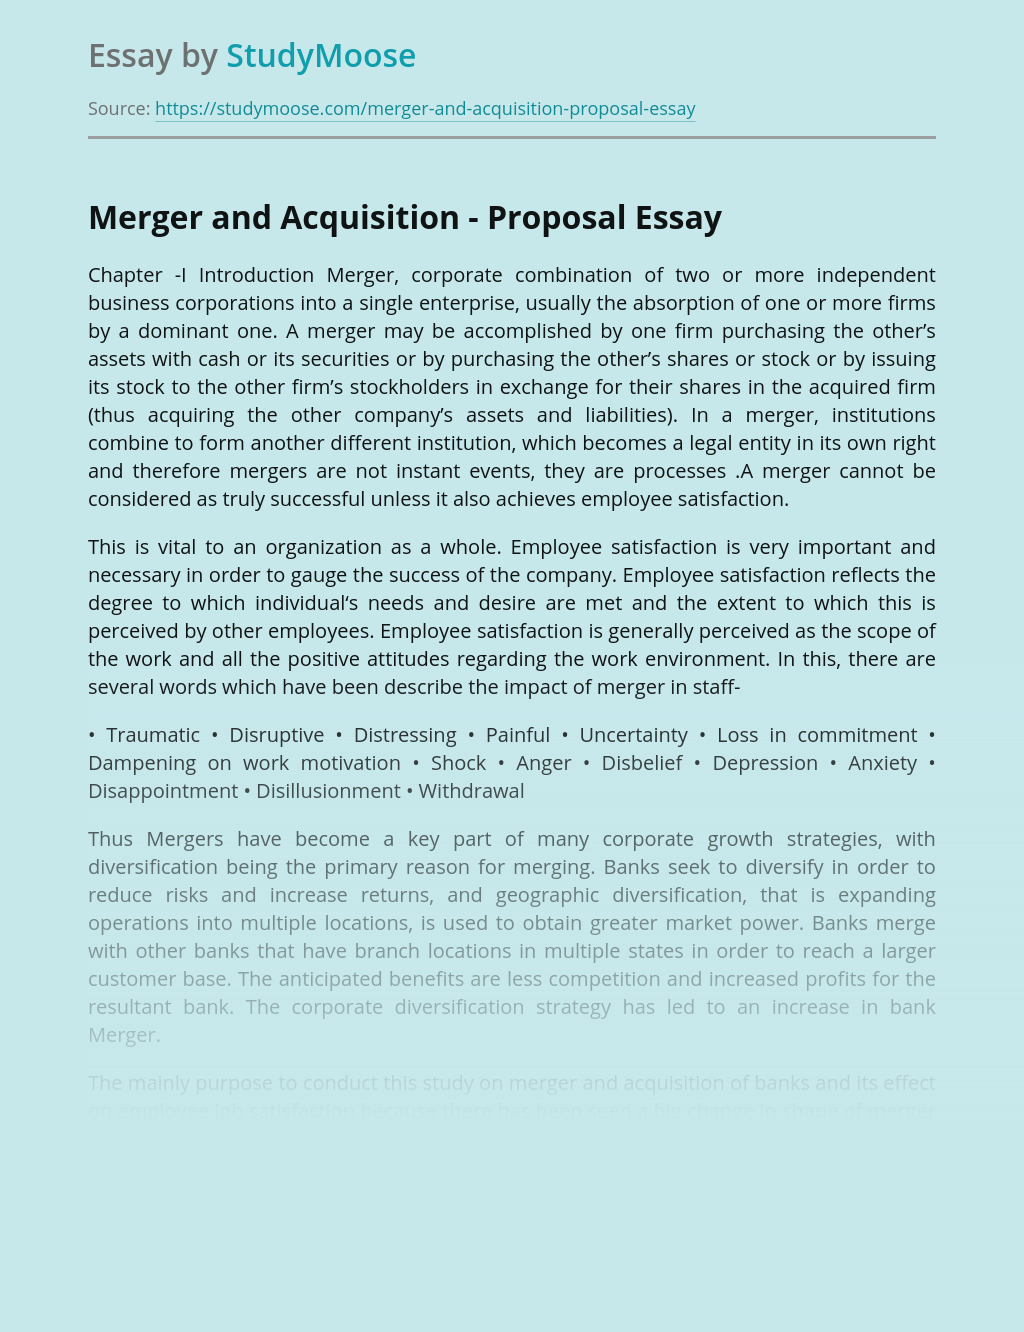 Merger and Acquisition - Proposal